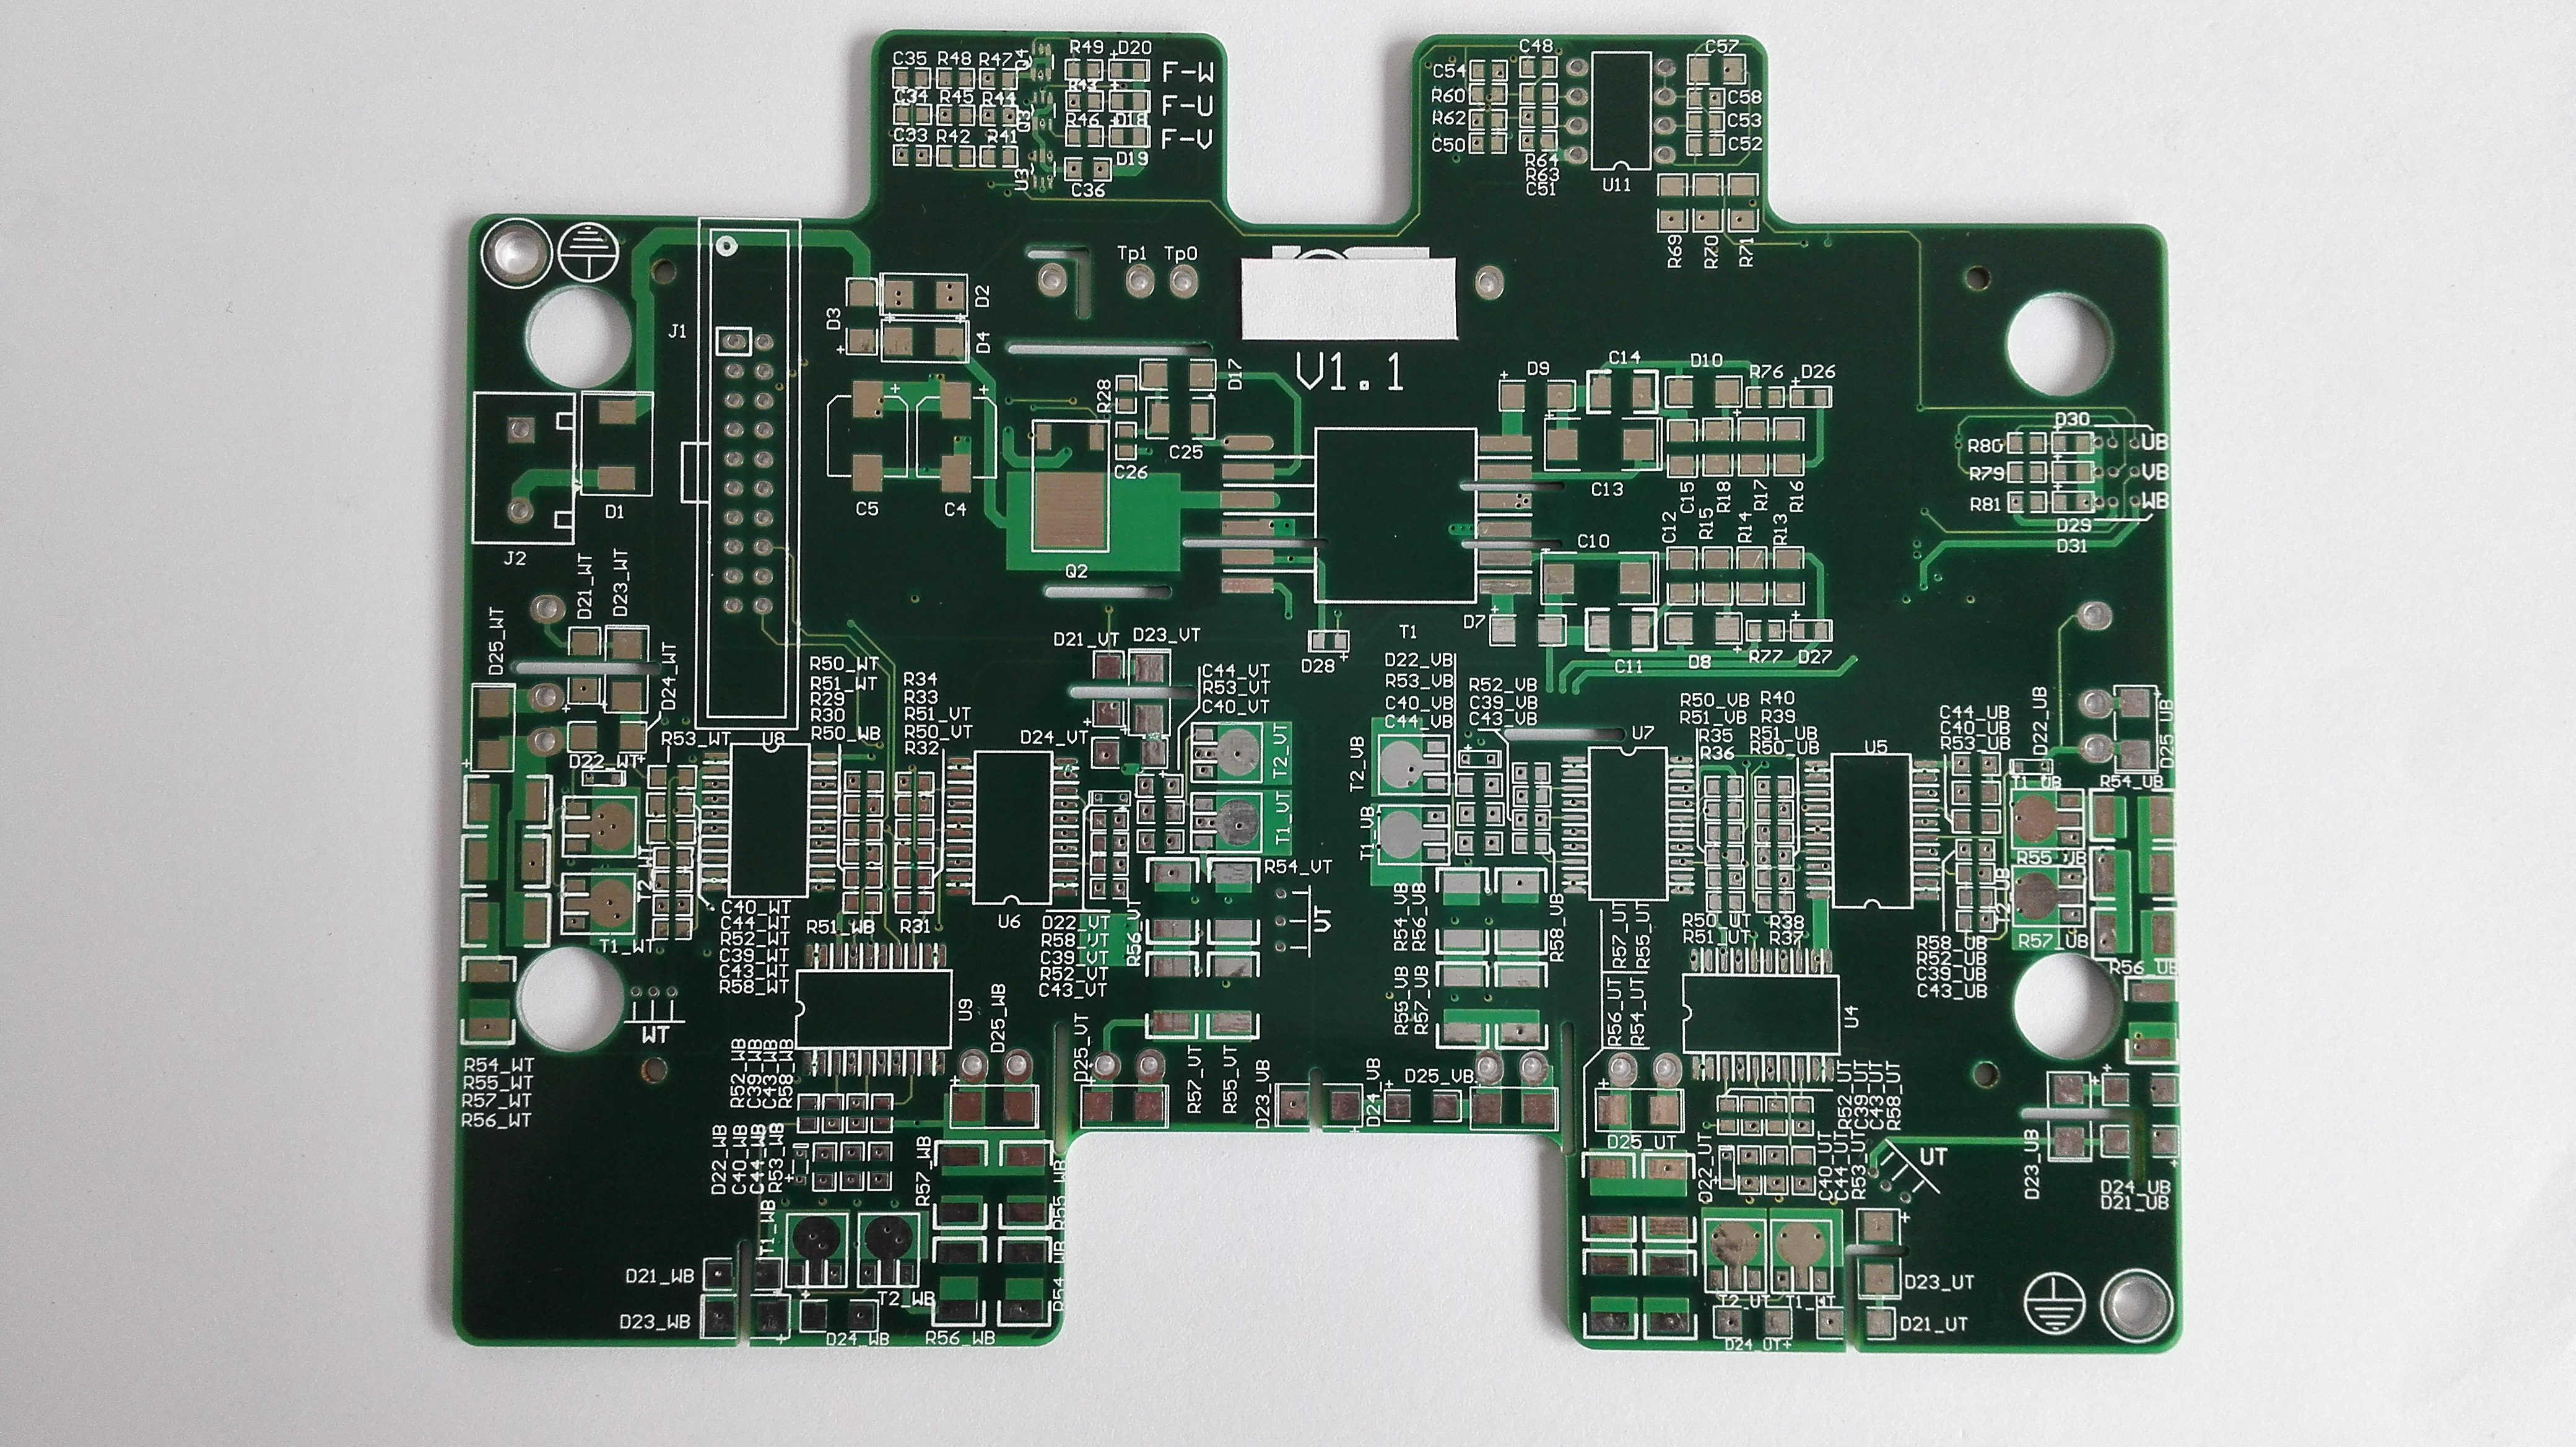 B Custom Small Batch Multilayer Printed Circuit Board Design Pcb Electronic Made Clone Manufacture From Sfr66 23